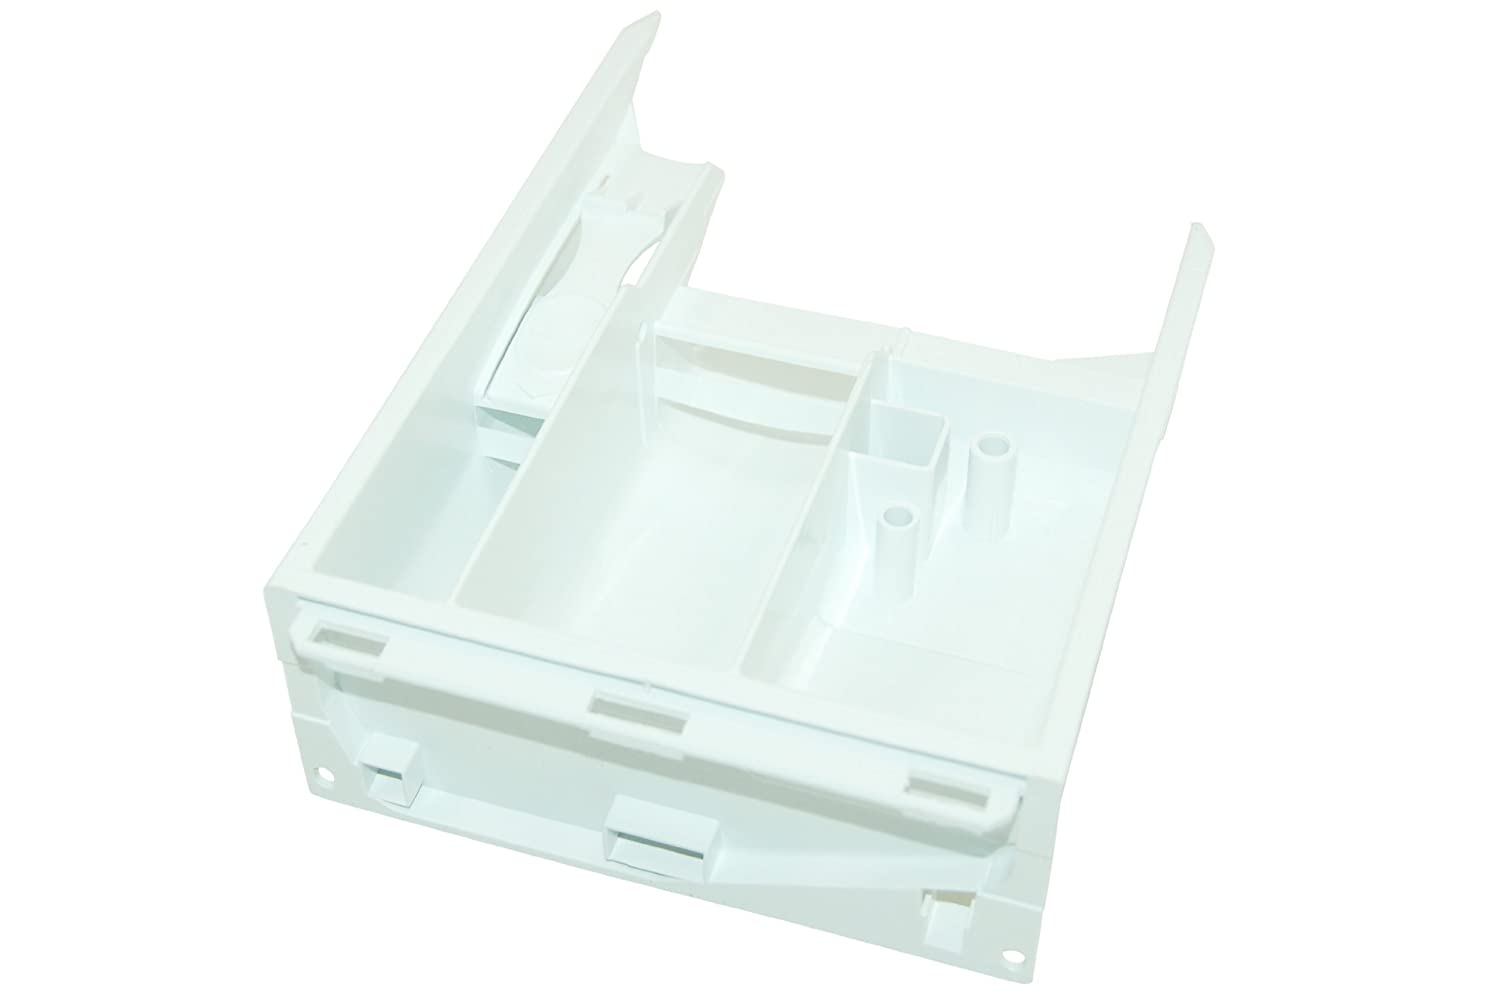 Electrolux Tricity Bendix Zanussi Washing Machine Detergent Drawer. Genuine part number 1246243503